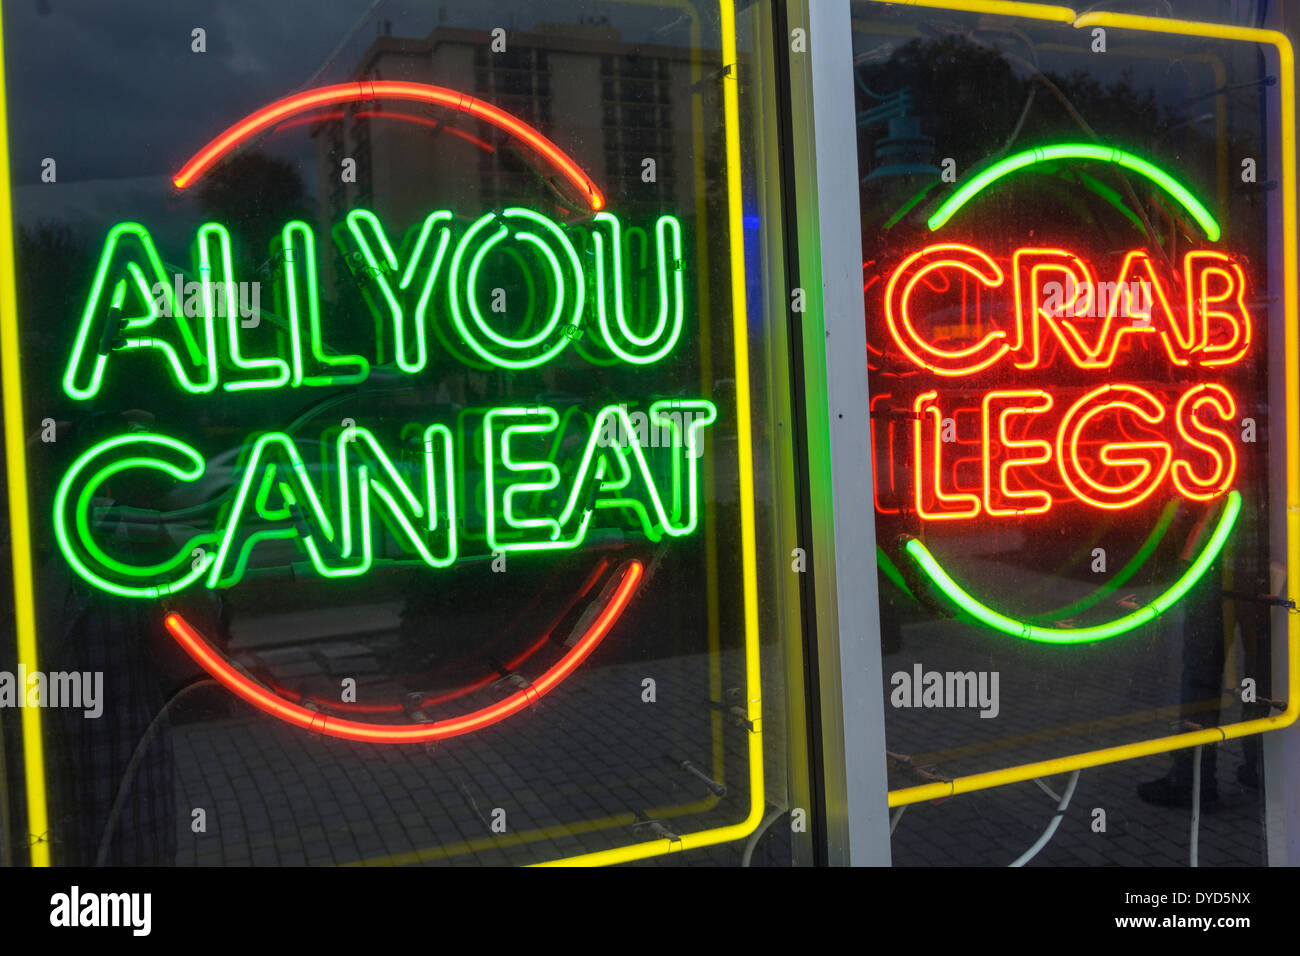 Orlando Florida International Drive neon sign all you can eat restaurant buffet crab legs advertising promotion - Stock Image